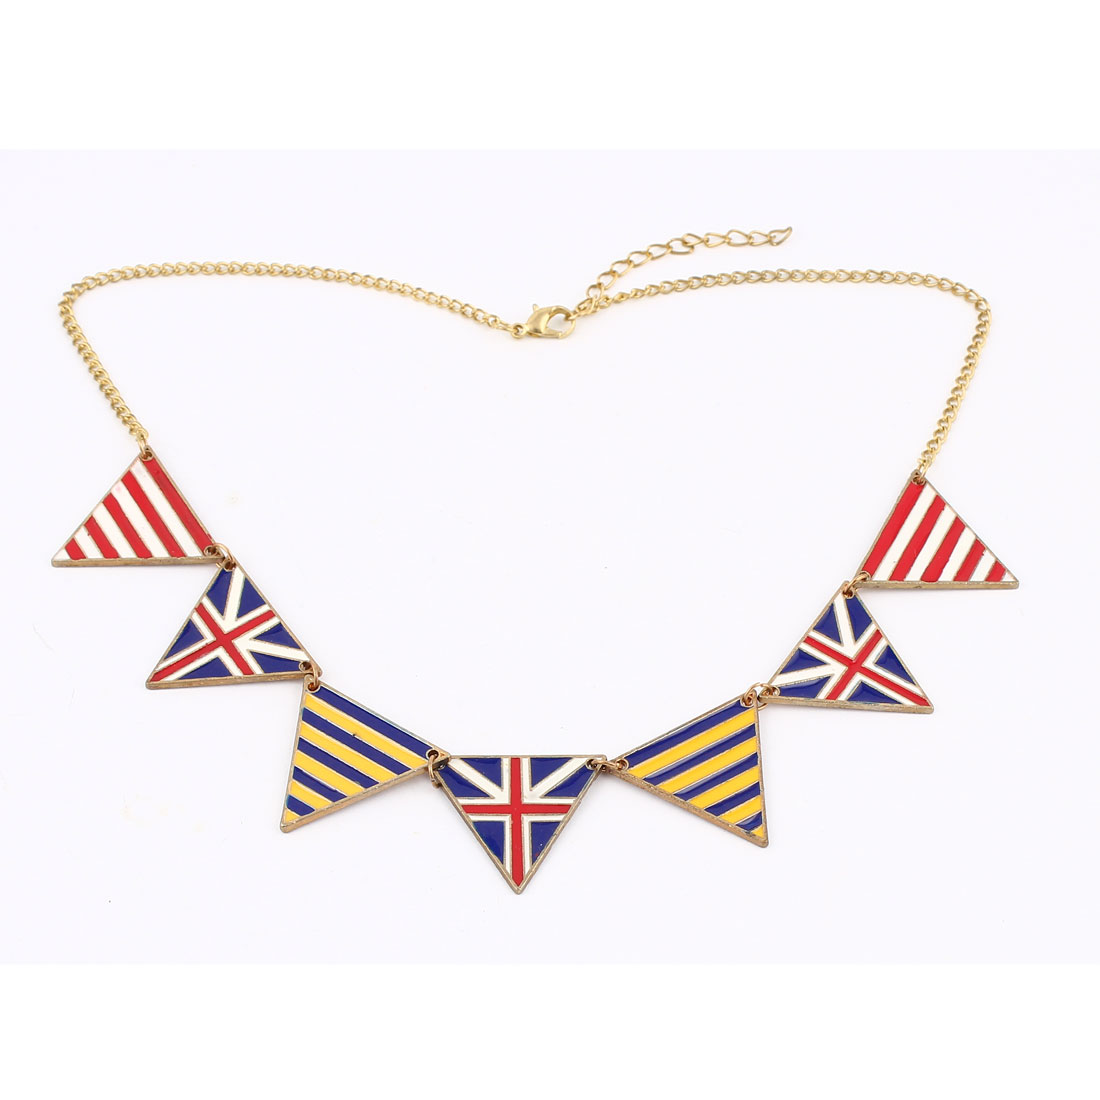 Gold Tone Metal National Flag Pendant Dress Sweater Necklace for Lady